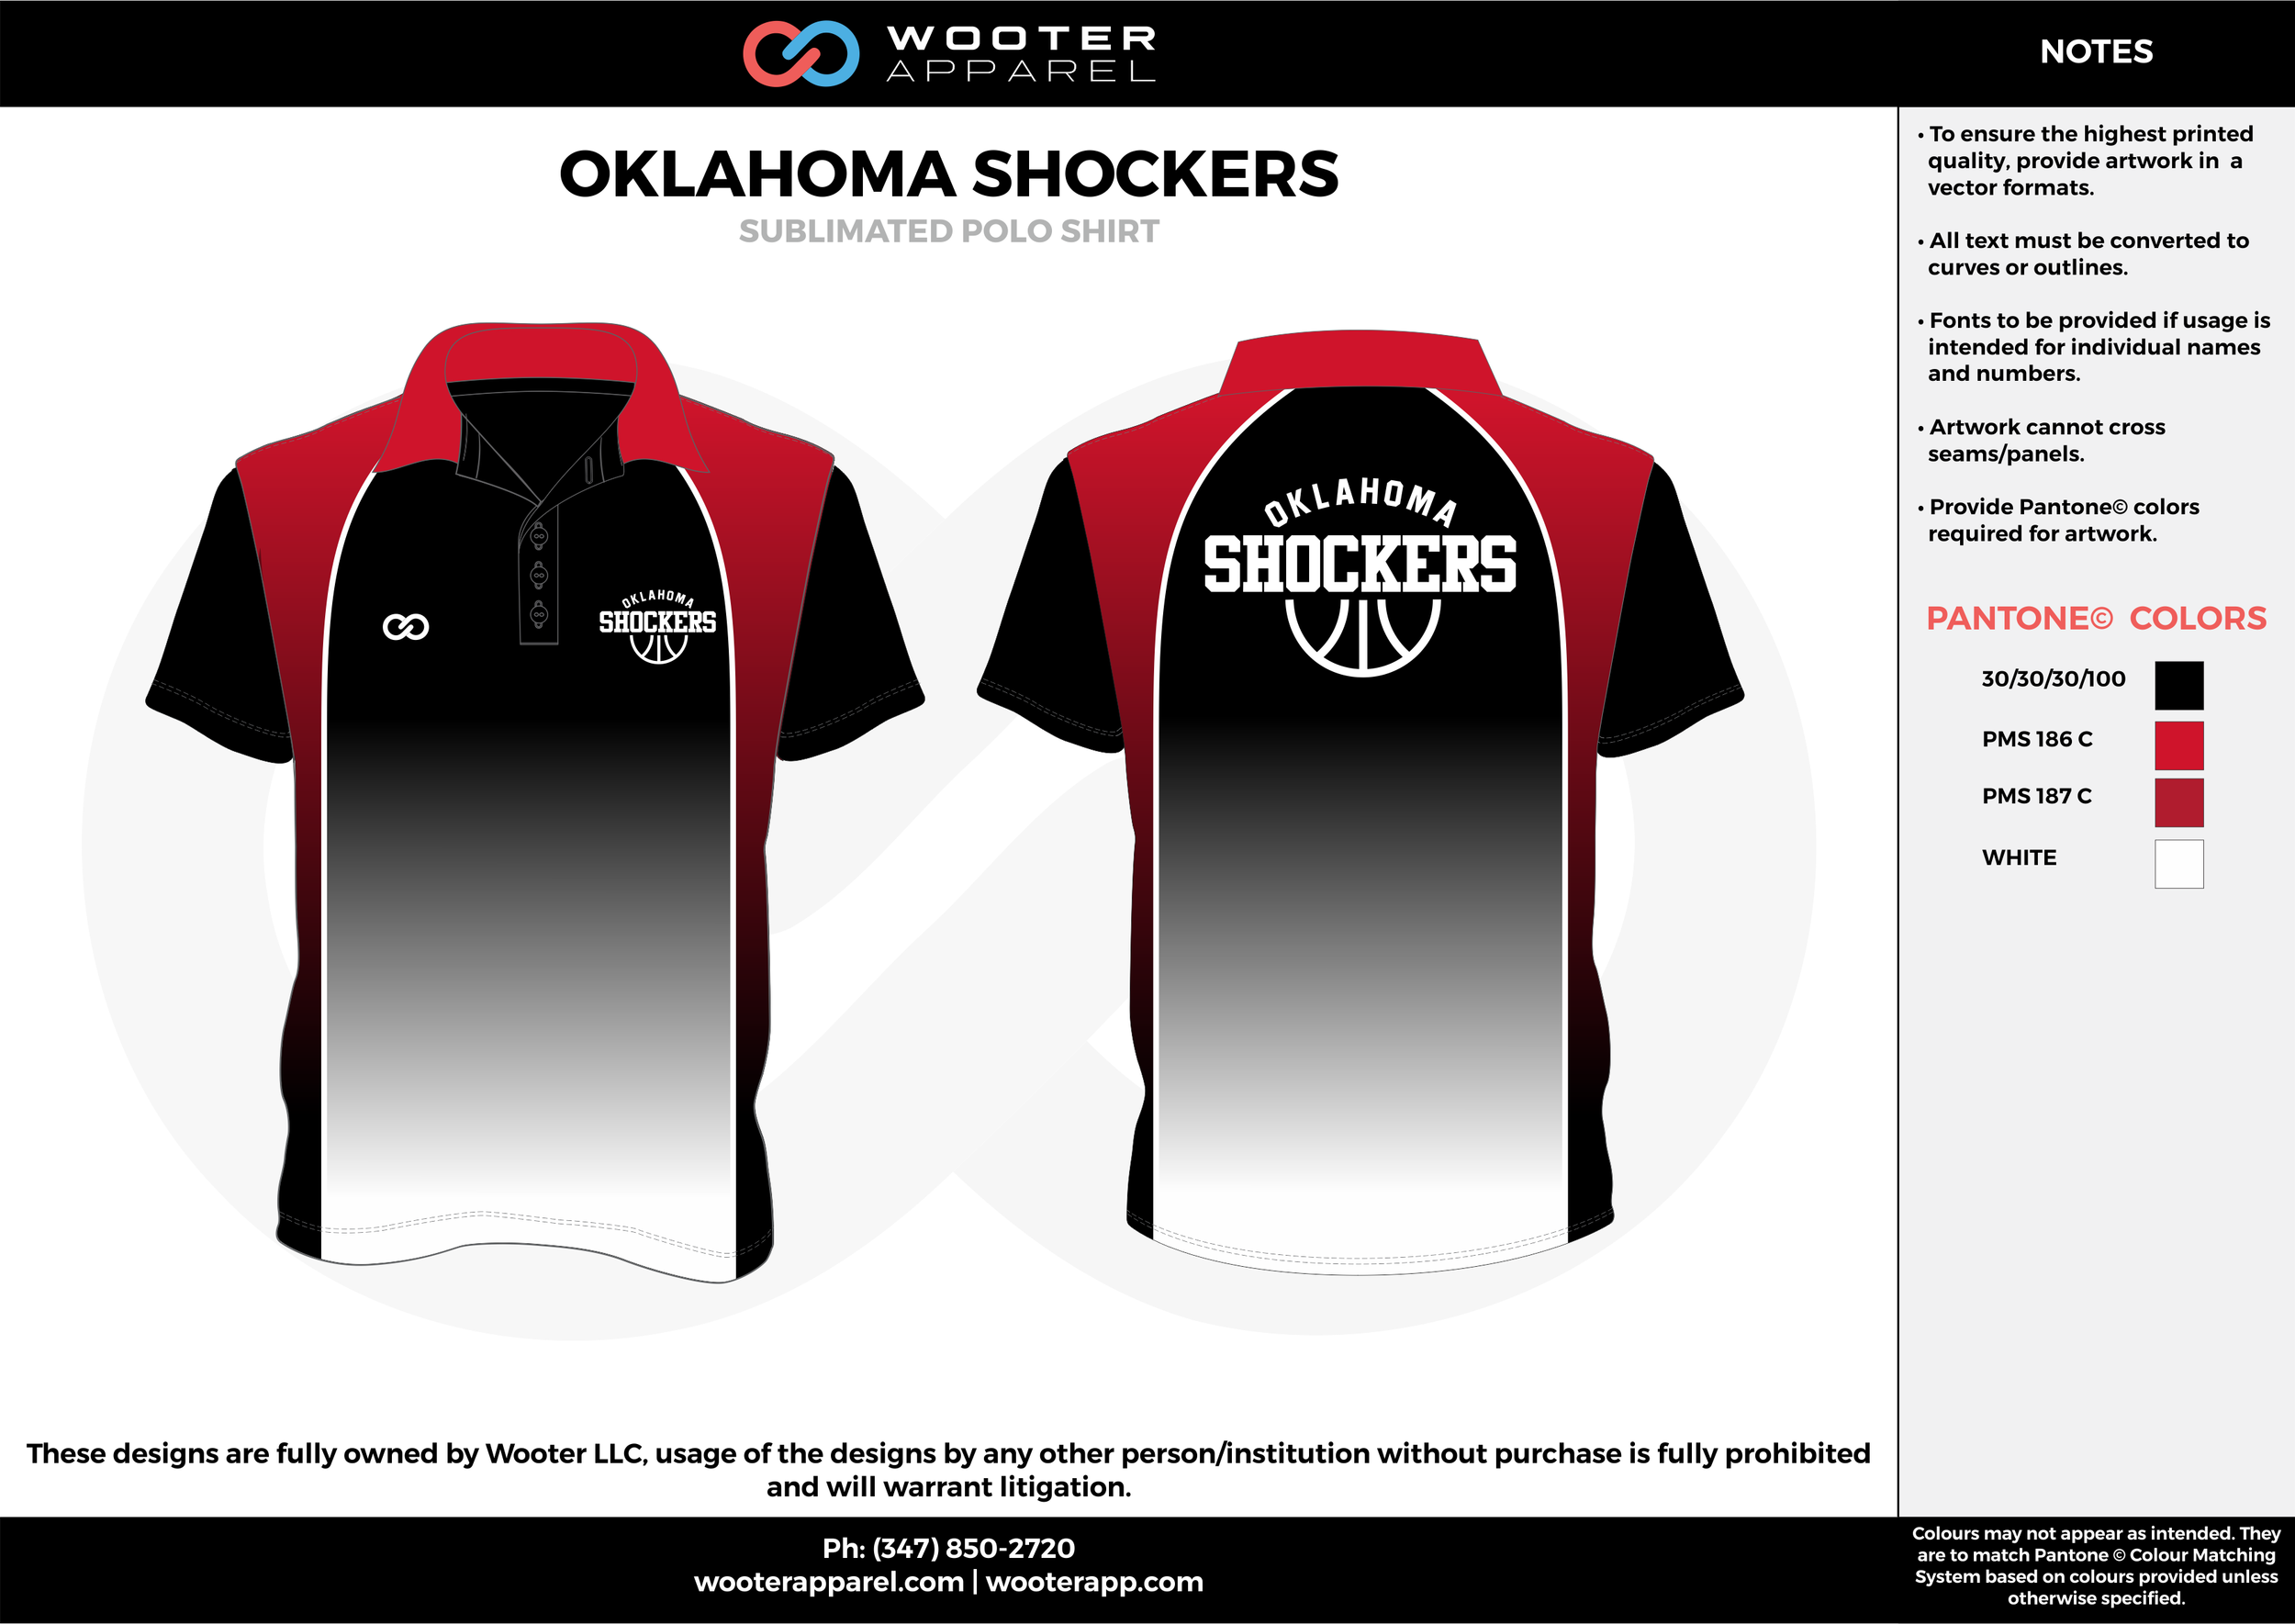 OKLAHOMA SHOCKERS Red White and Black Sublimated Polo Shirts